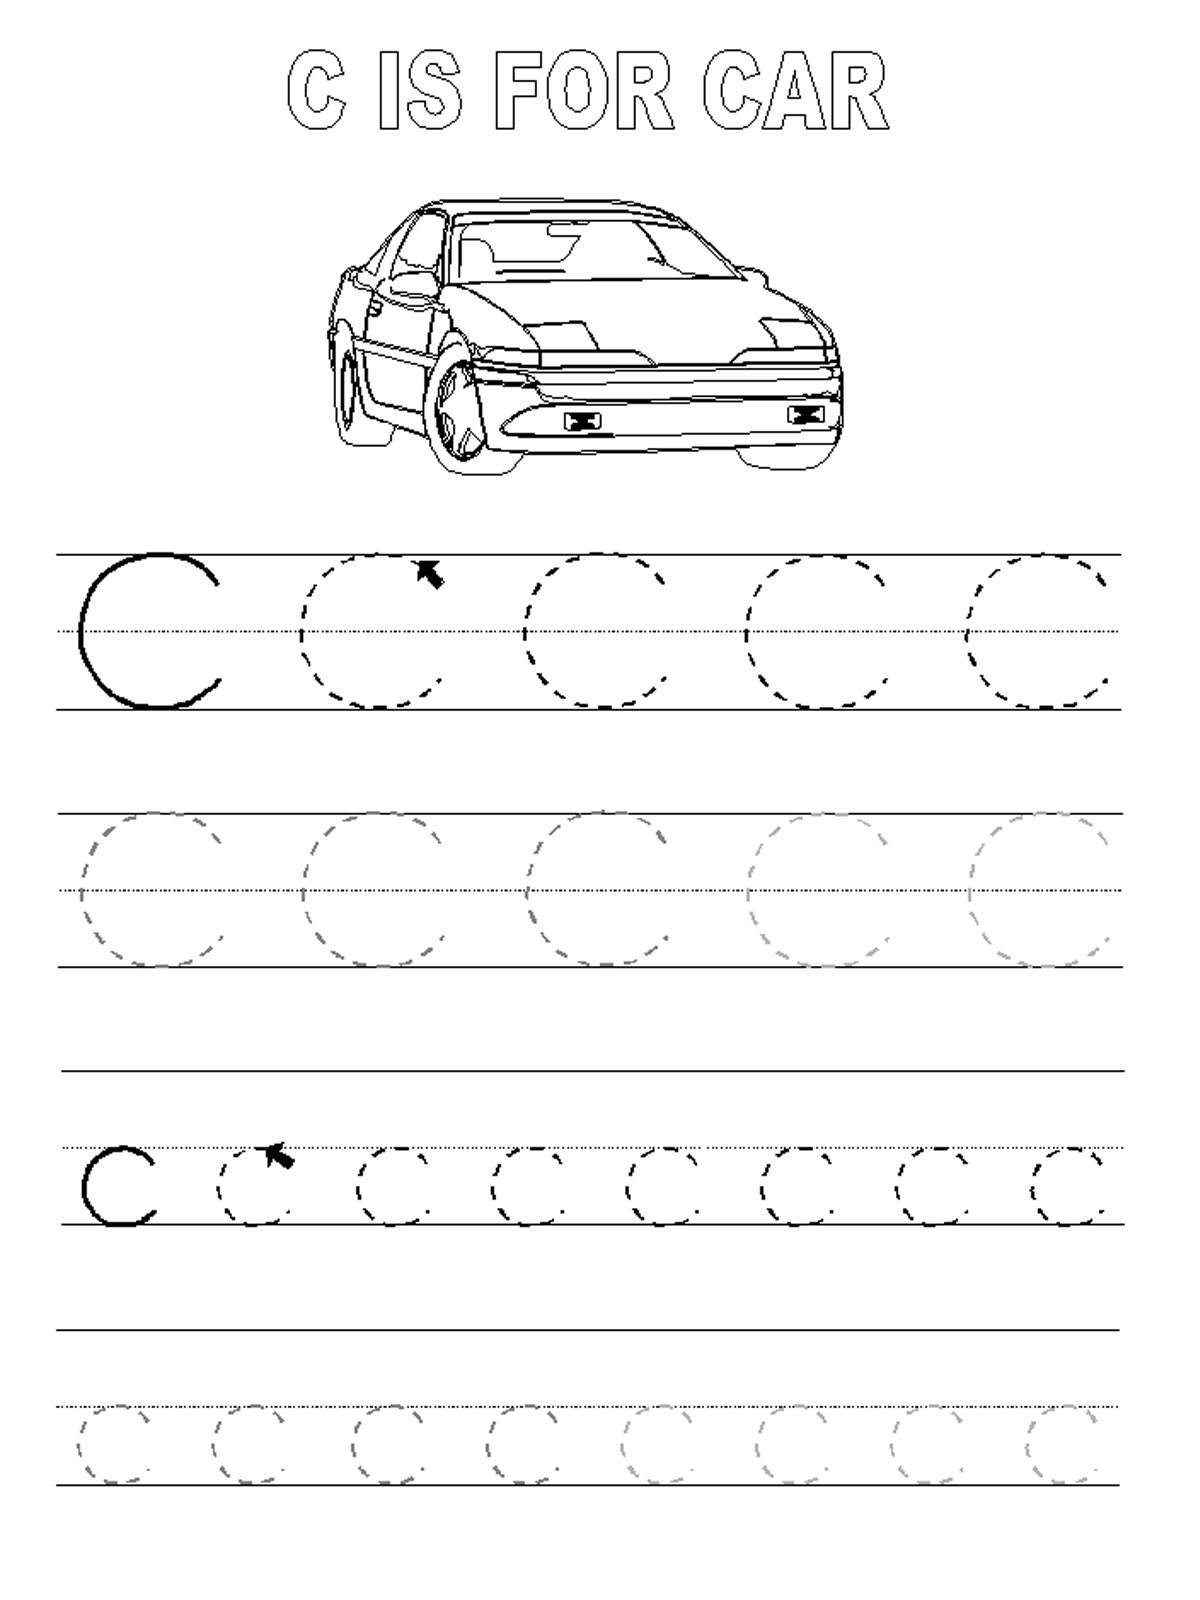 Printables Letter C Worksheets Preschool safarmediapps – Letter C Worksheets Kindergarten